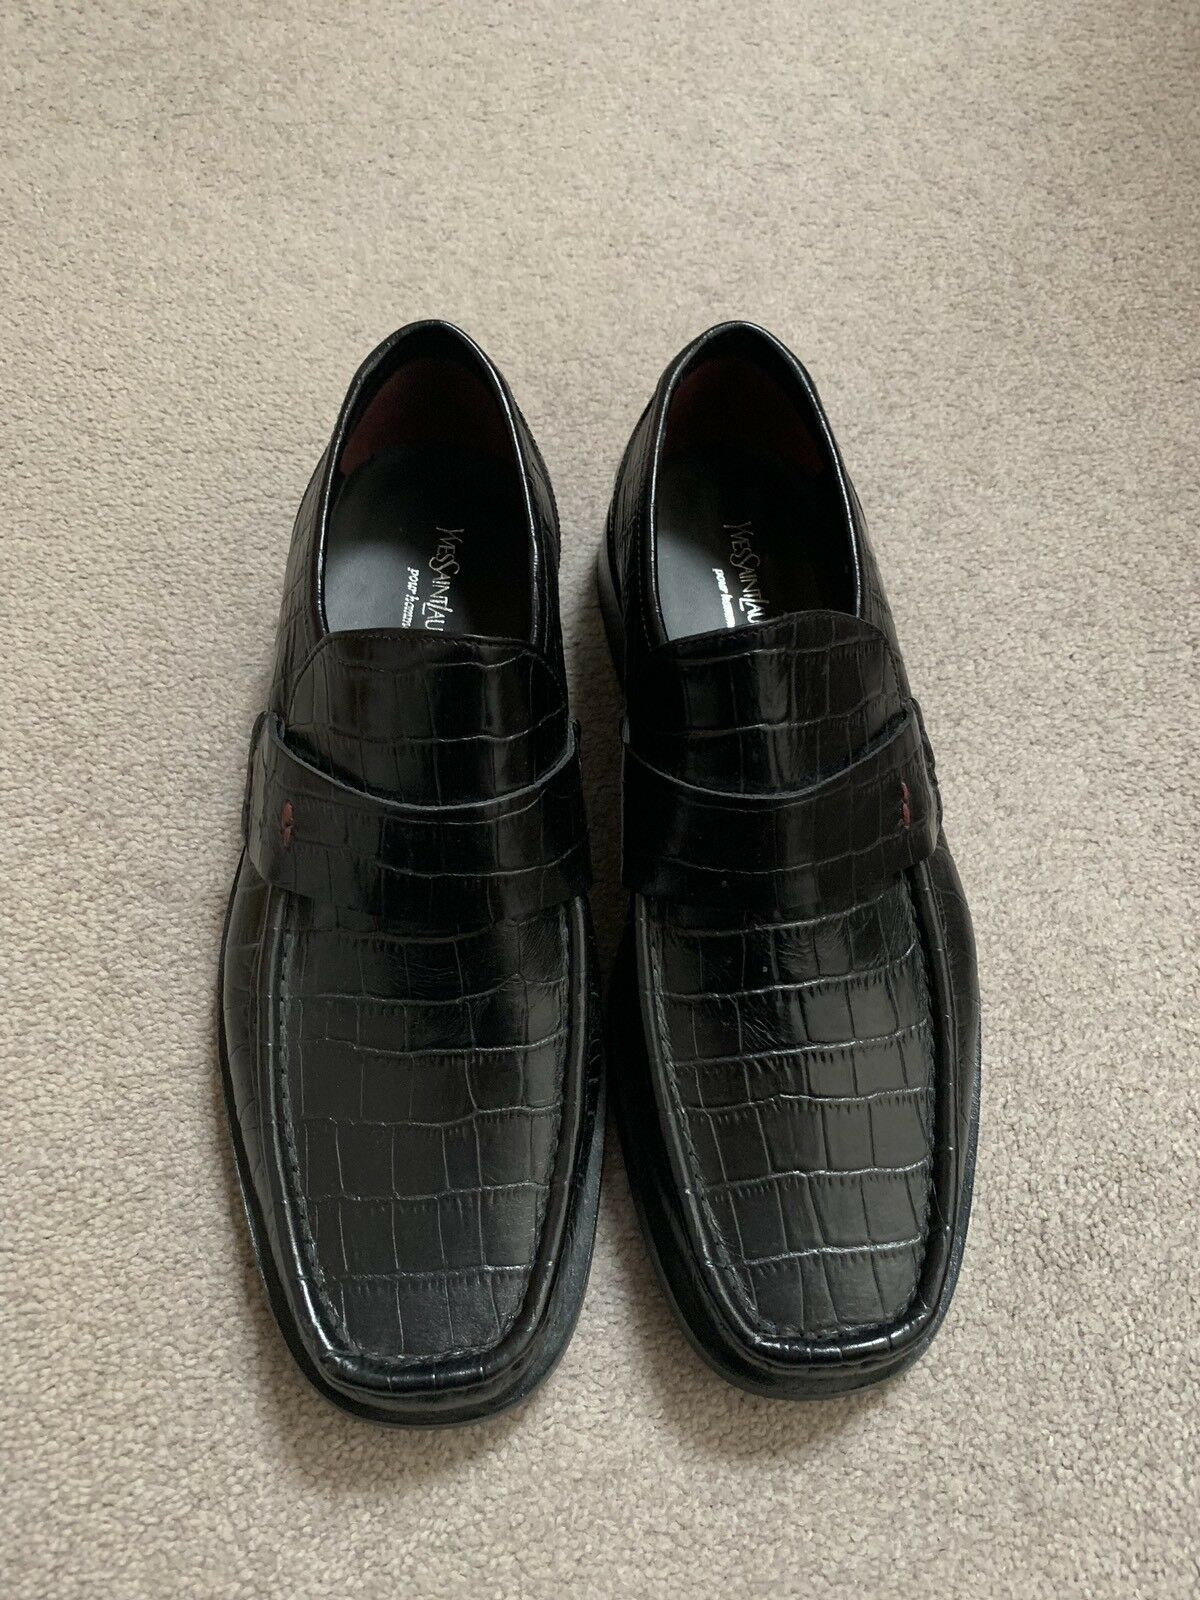 Conception innovante d4a8a 4c413 Yves Saint Laurent Homme Chaussures Taille 8 NEUF | New New ...